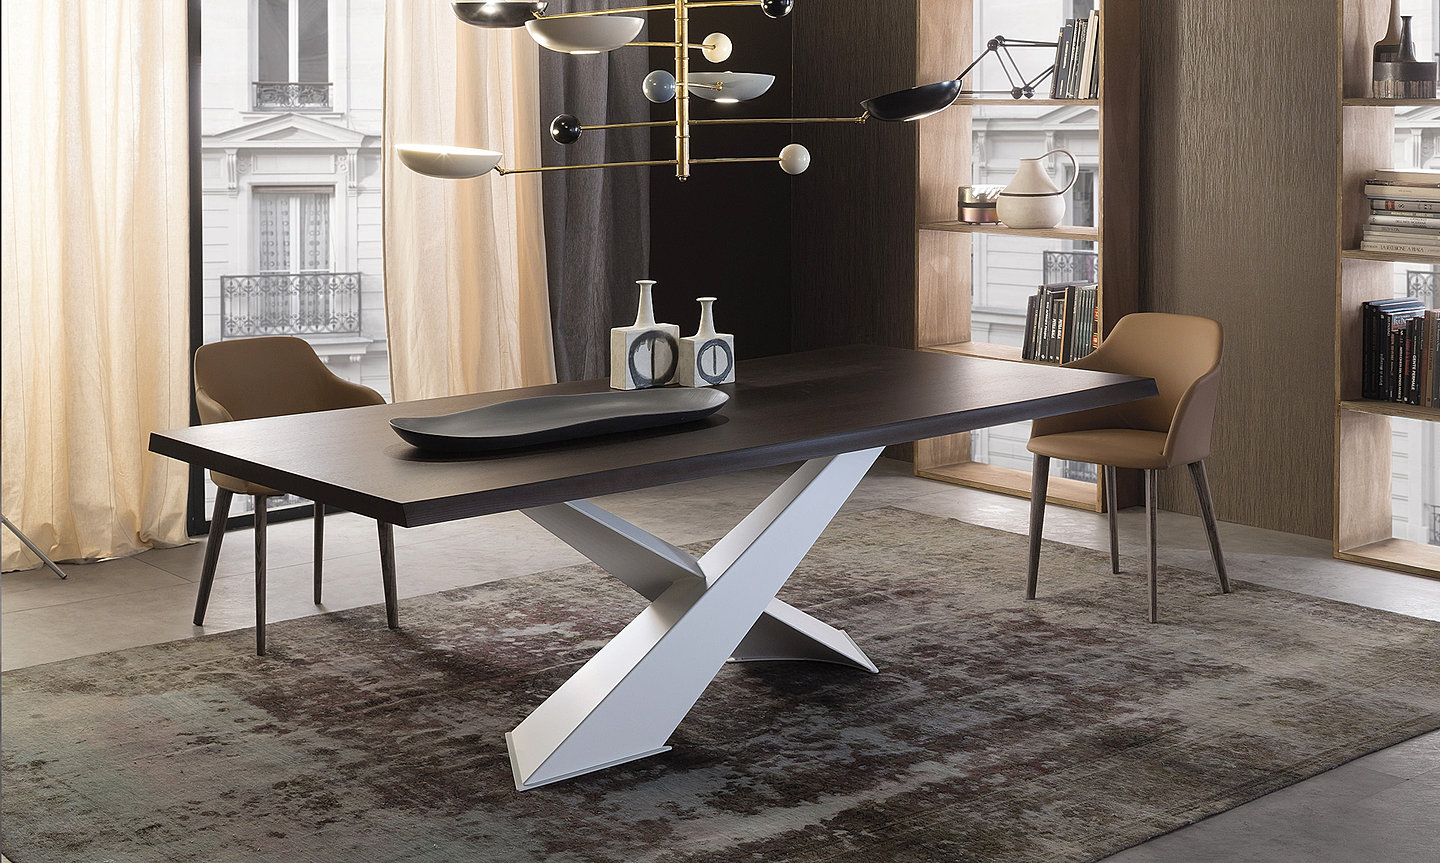 OH LA LA Modern Italian dining tables contemporary table